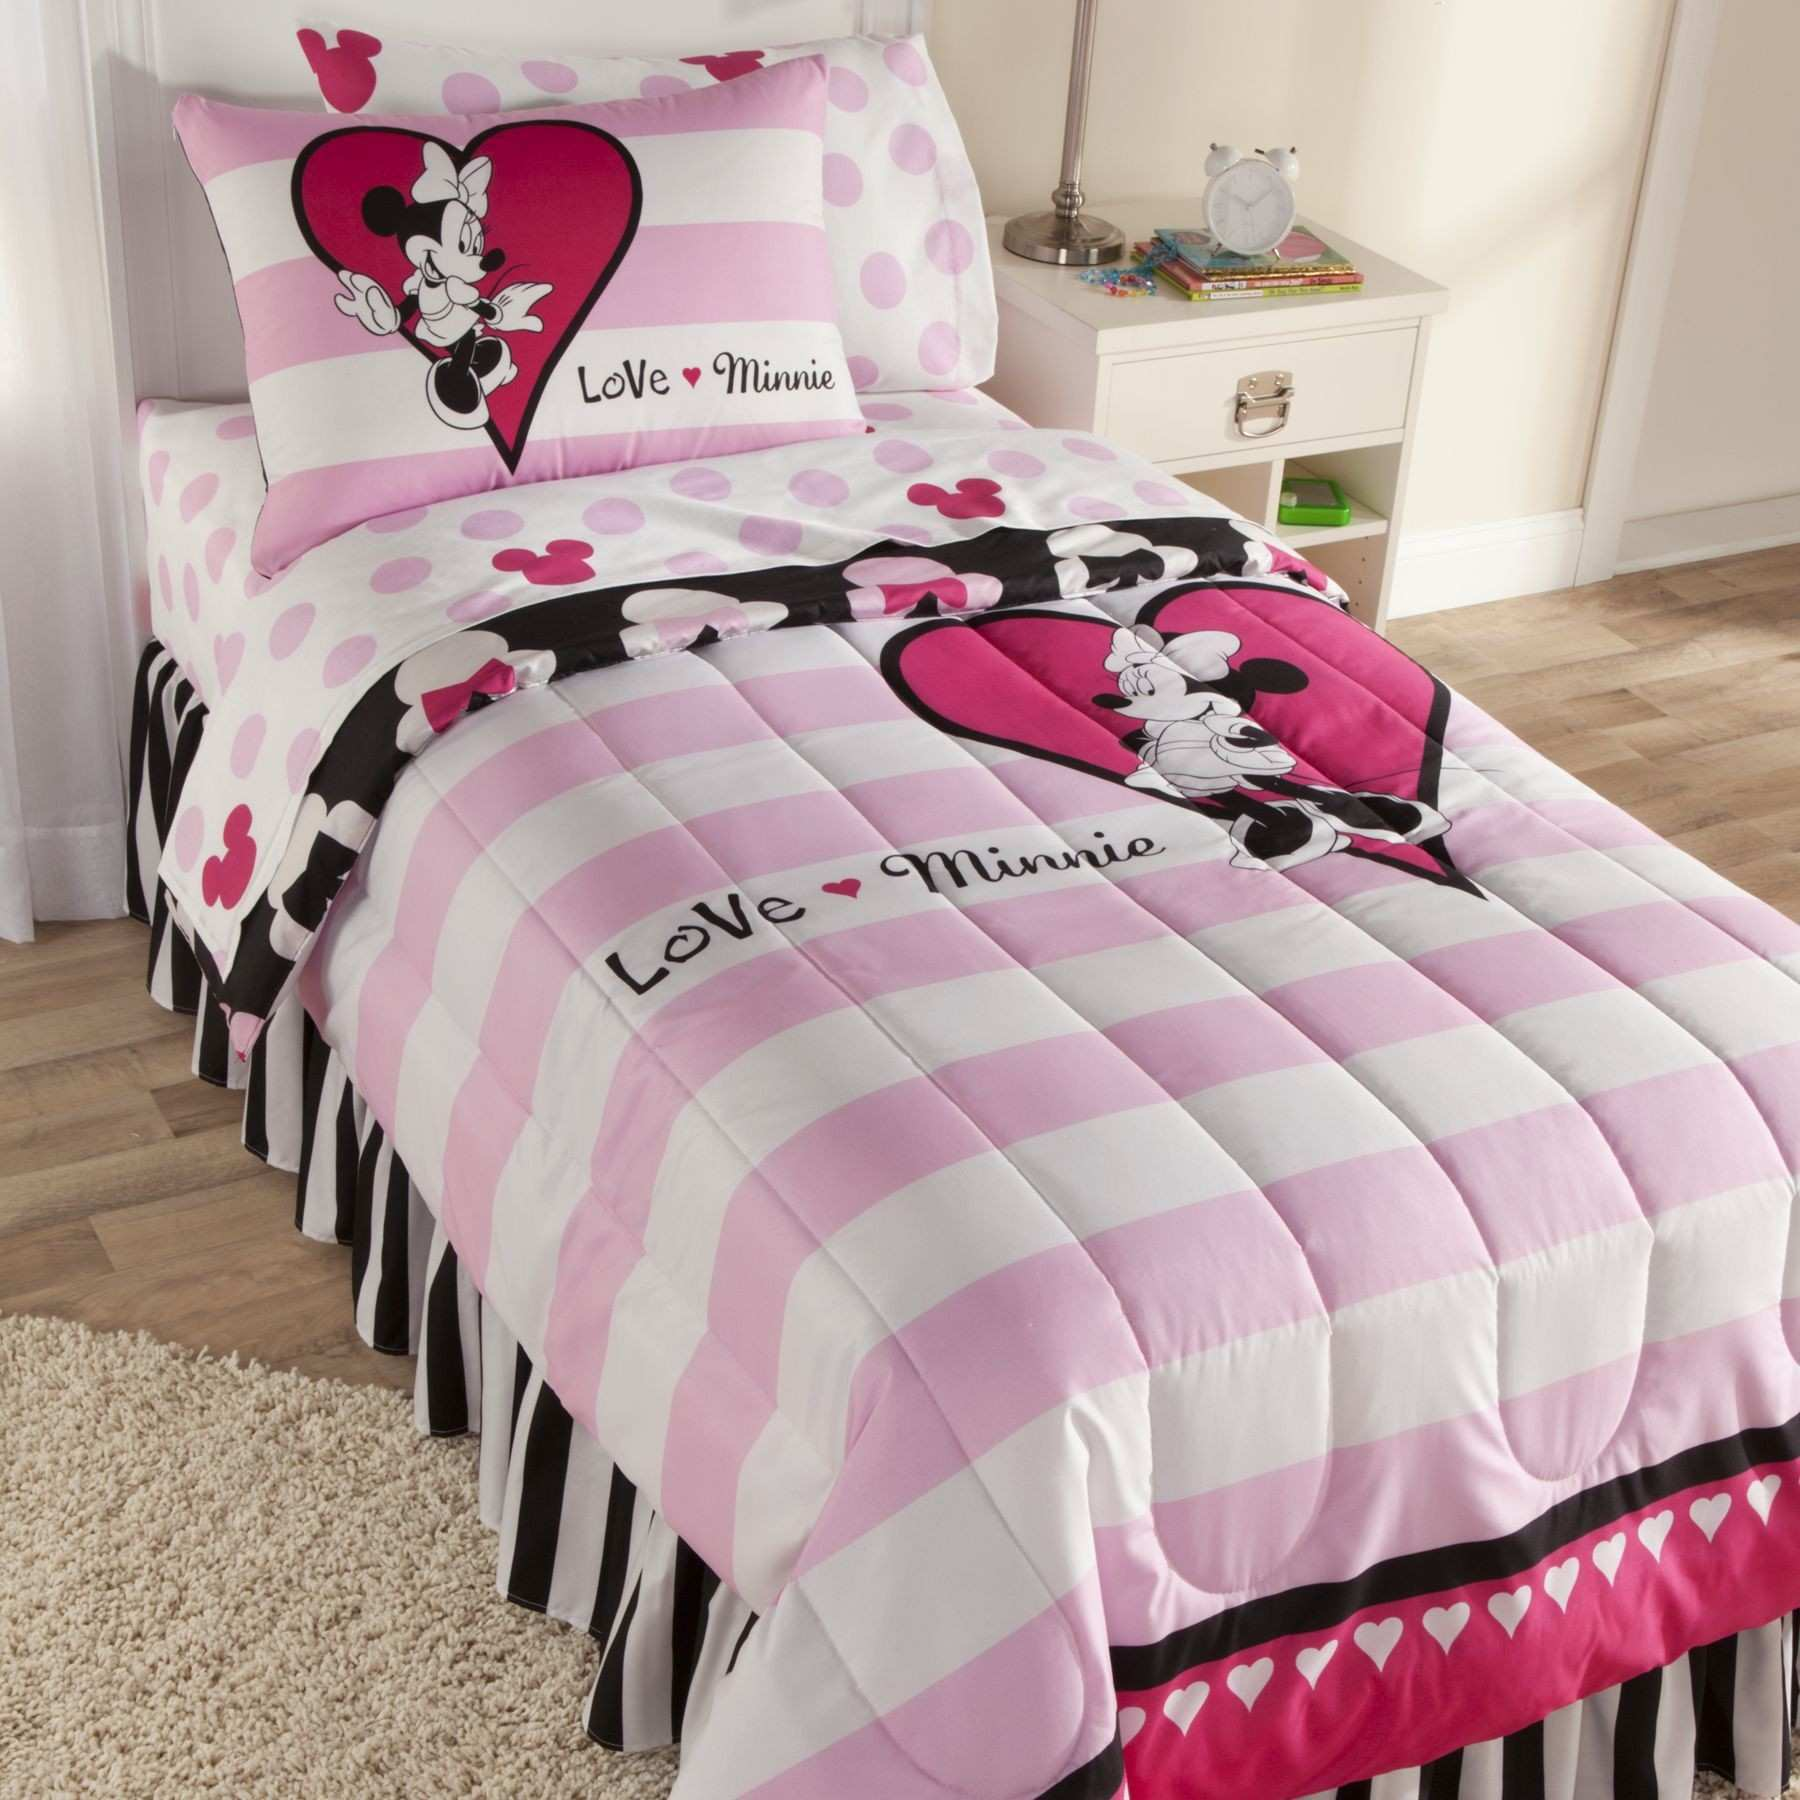 Modern Bedroom Inspiration To Bedroom His And Hers Mickey And Minnie